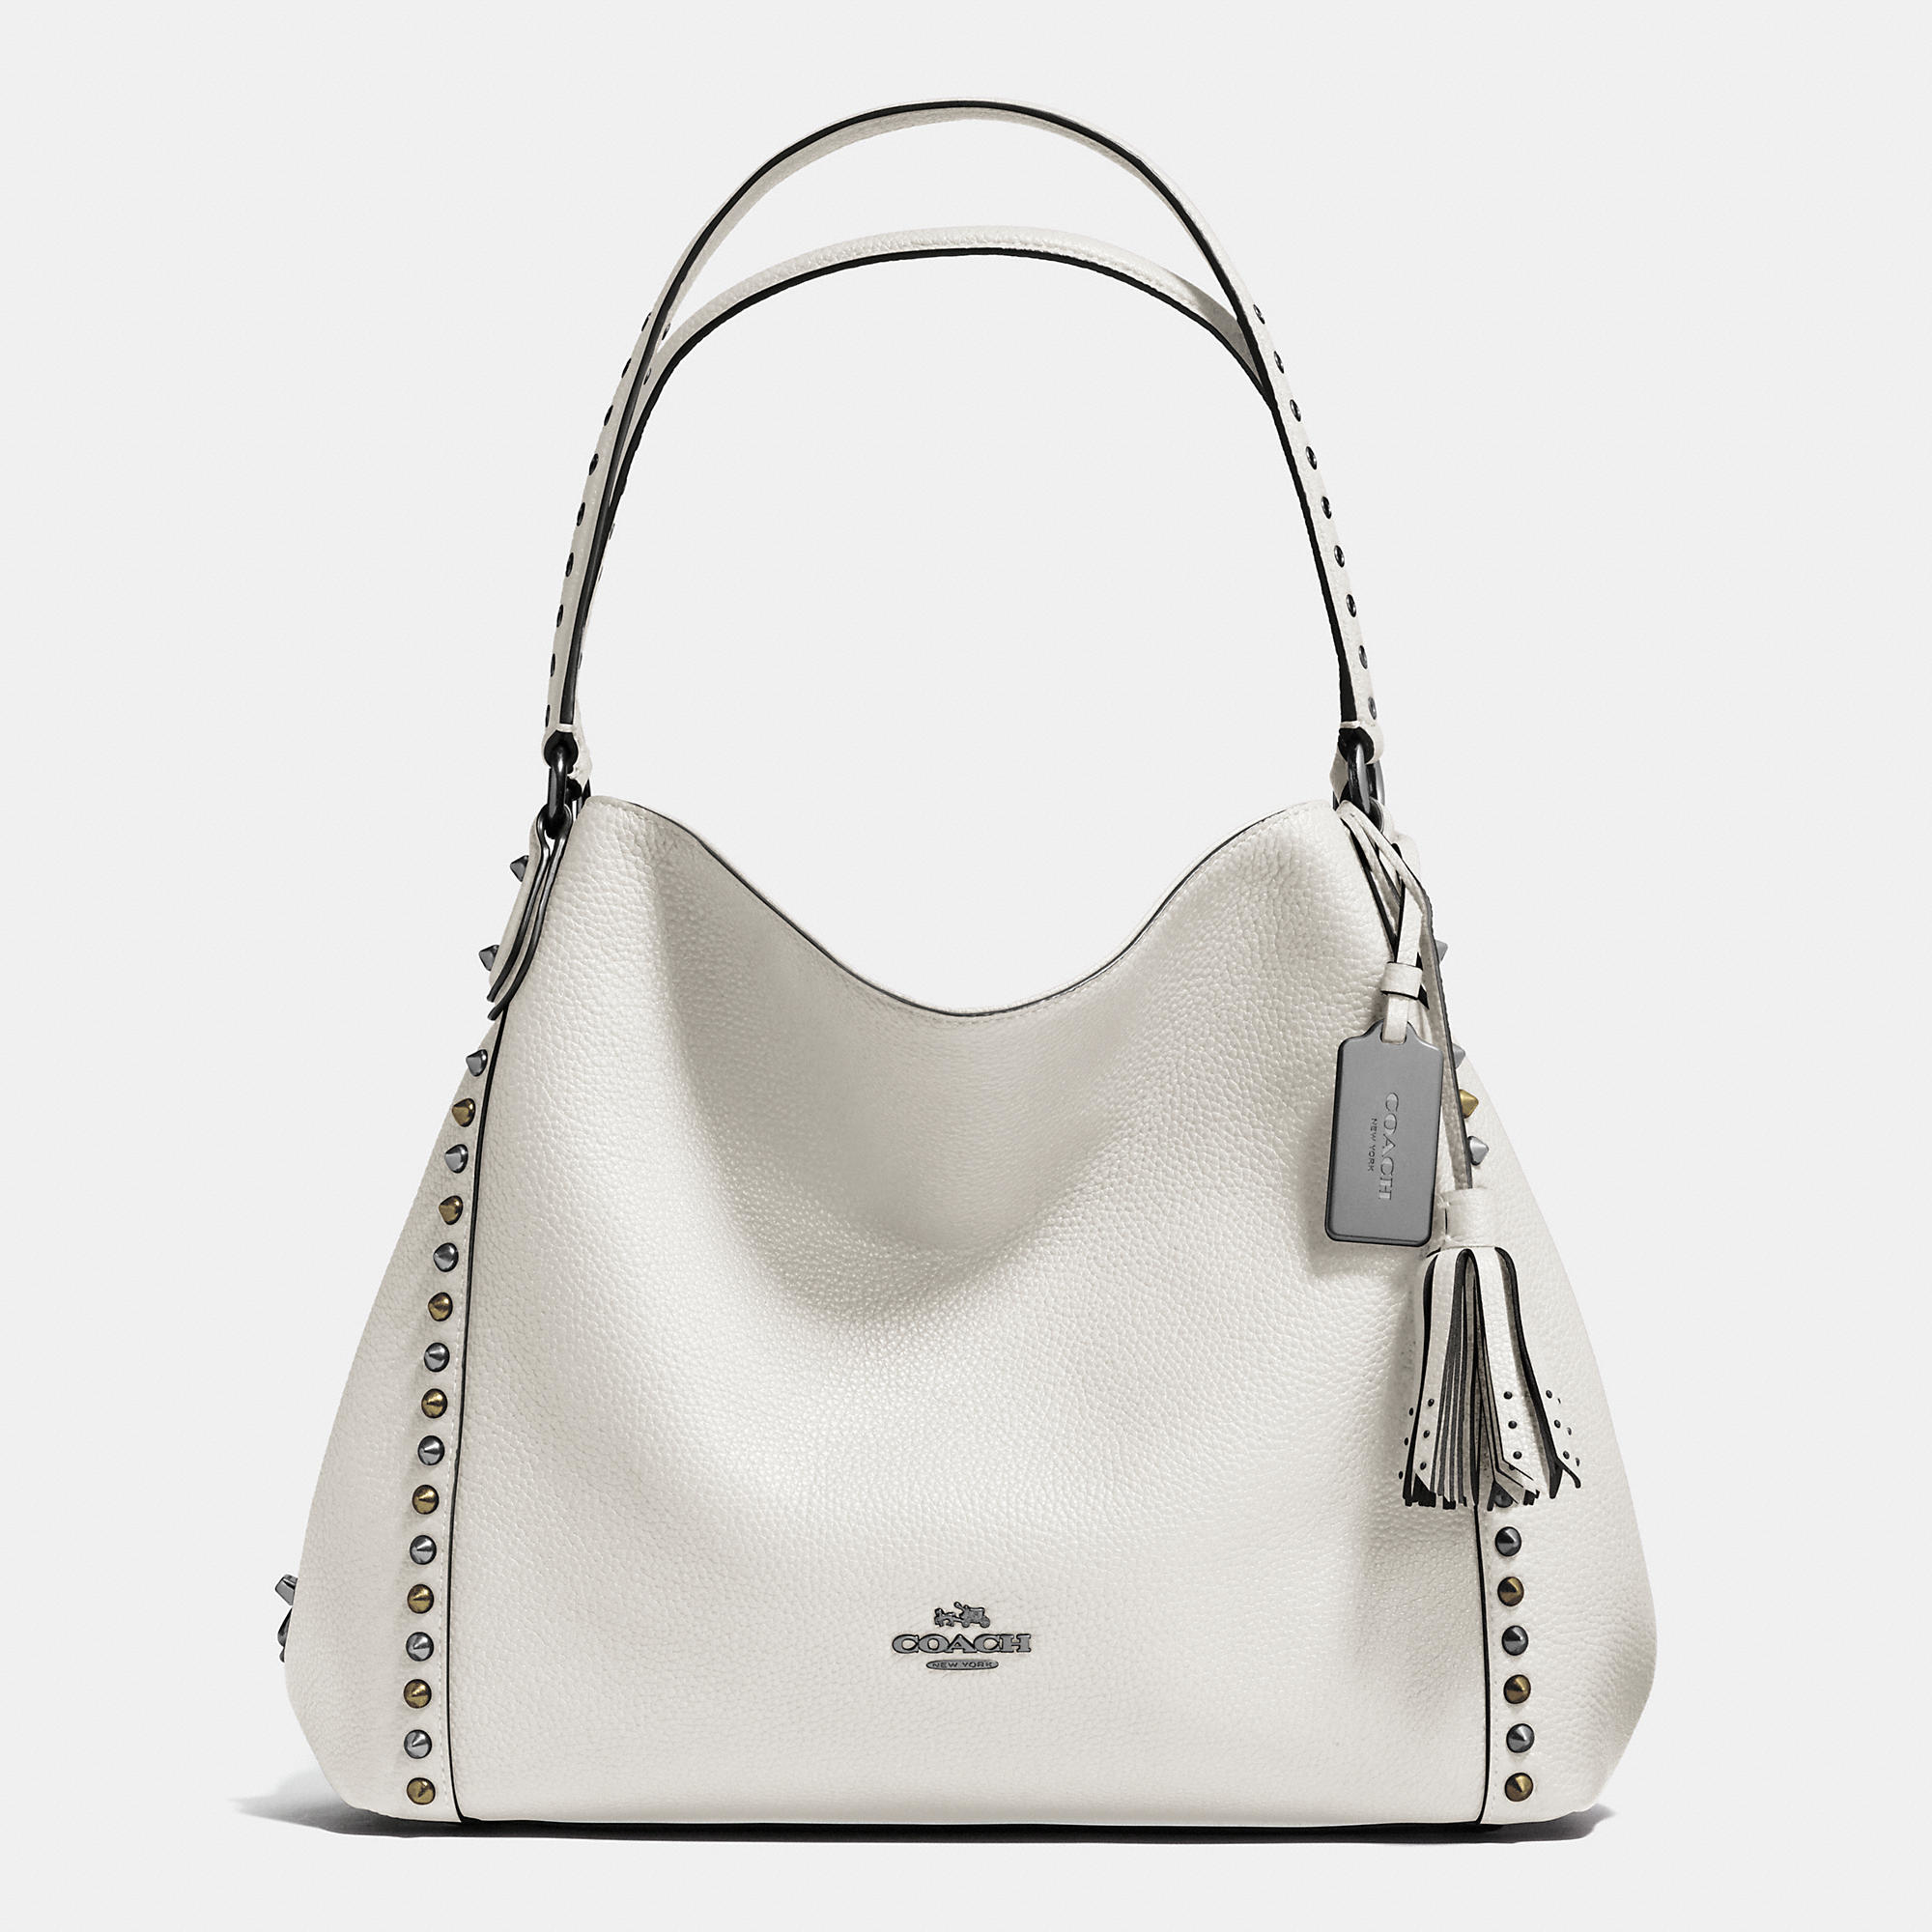 d636c5db7e4c6 cheapest lyst coach outline studs and grommets edie shoulder bag 31 in  8def1 3c469